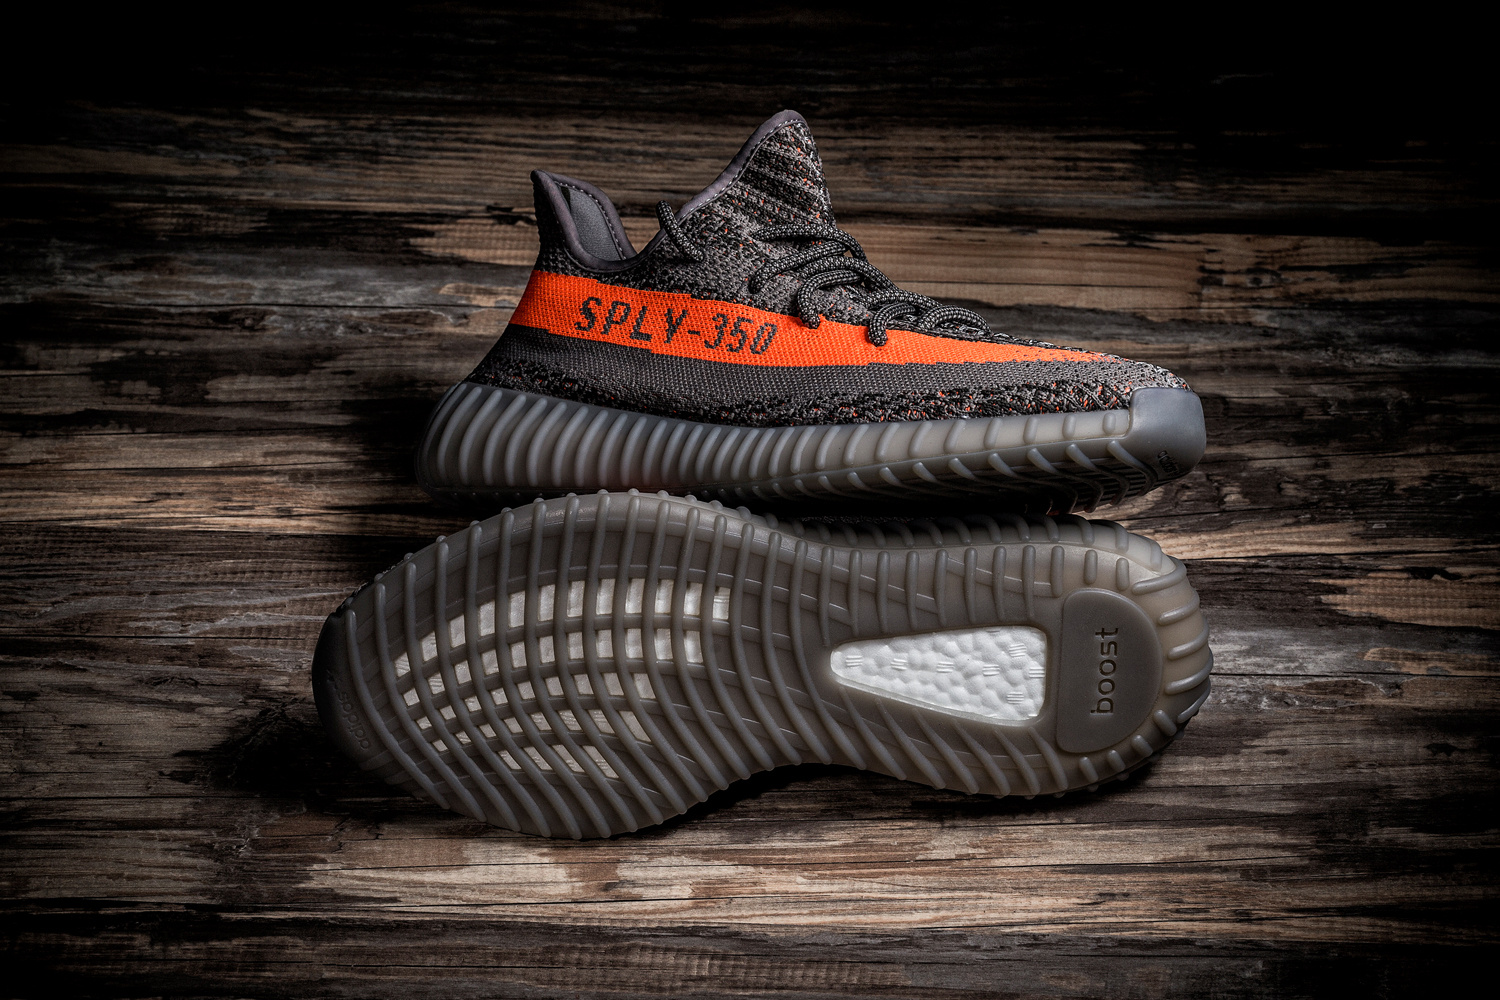 Adidas Yeezy Boost 350 v2 Steeple Gray Beluga Solar Red